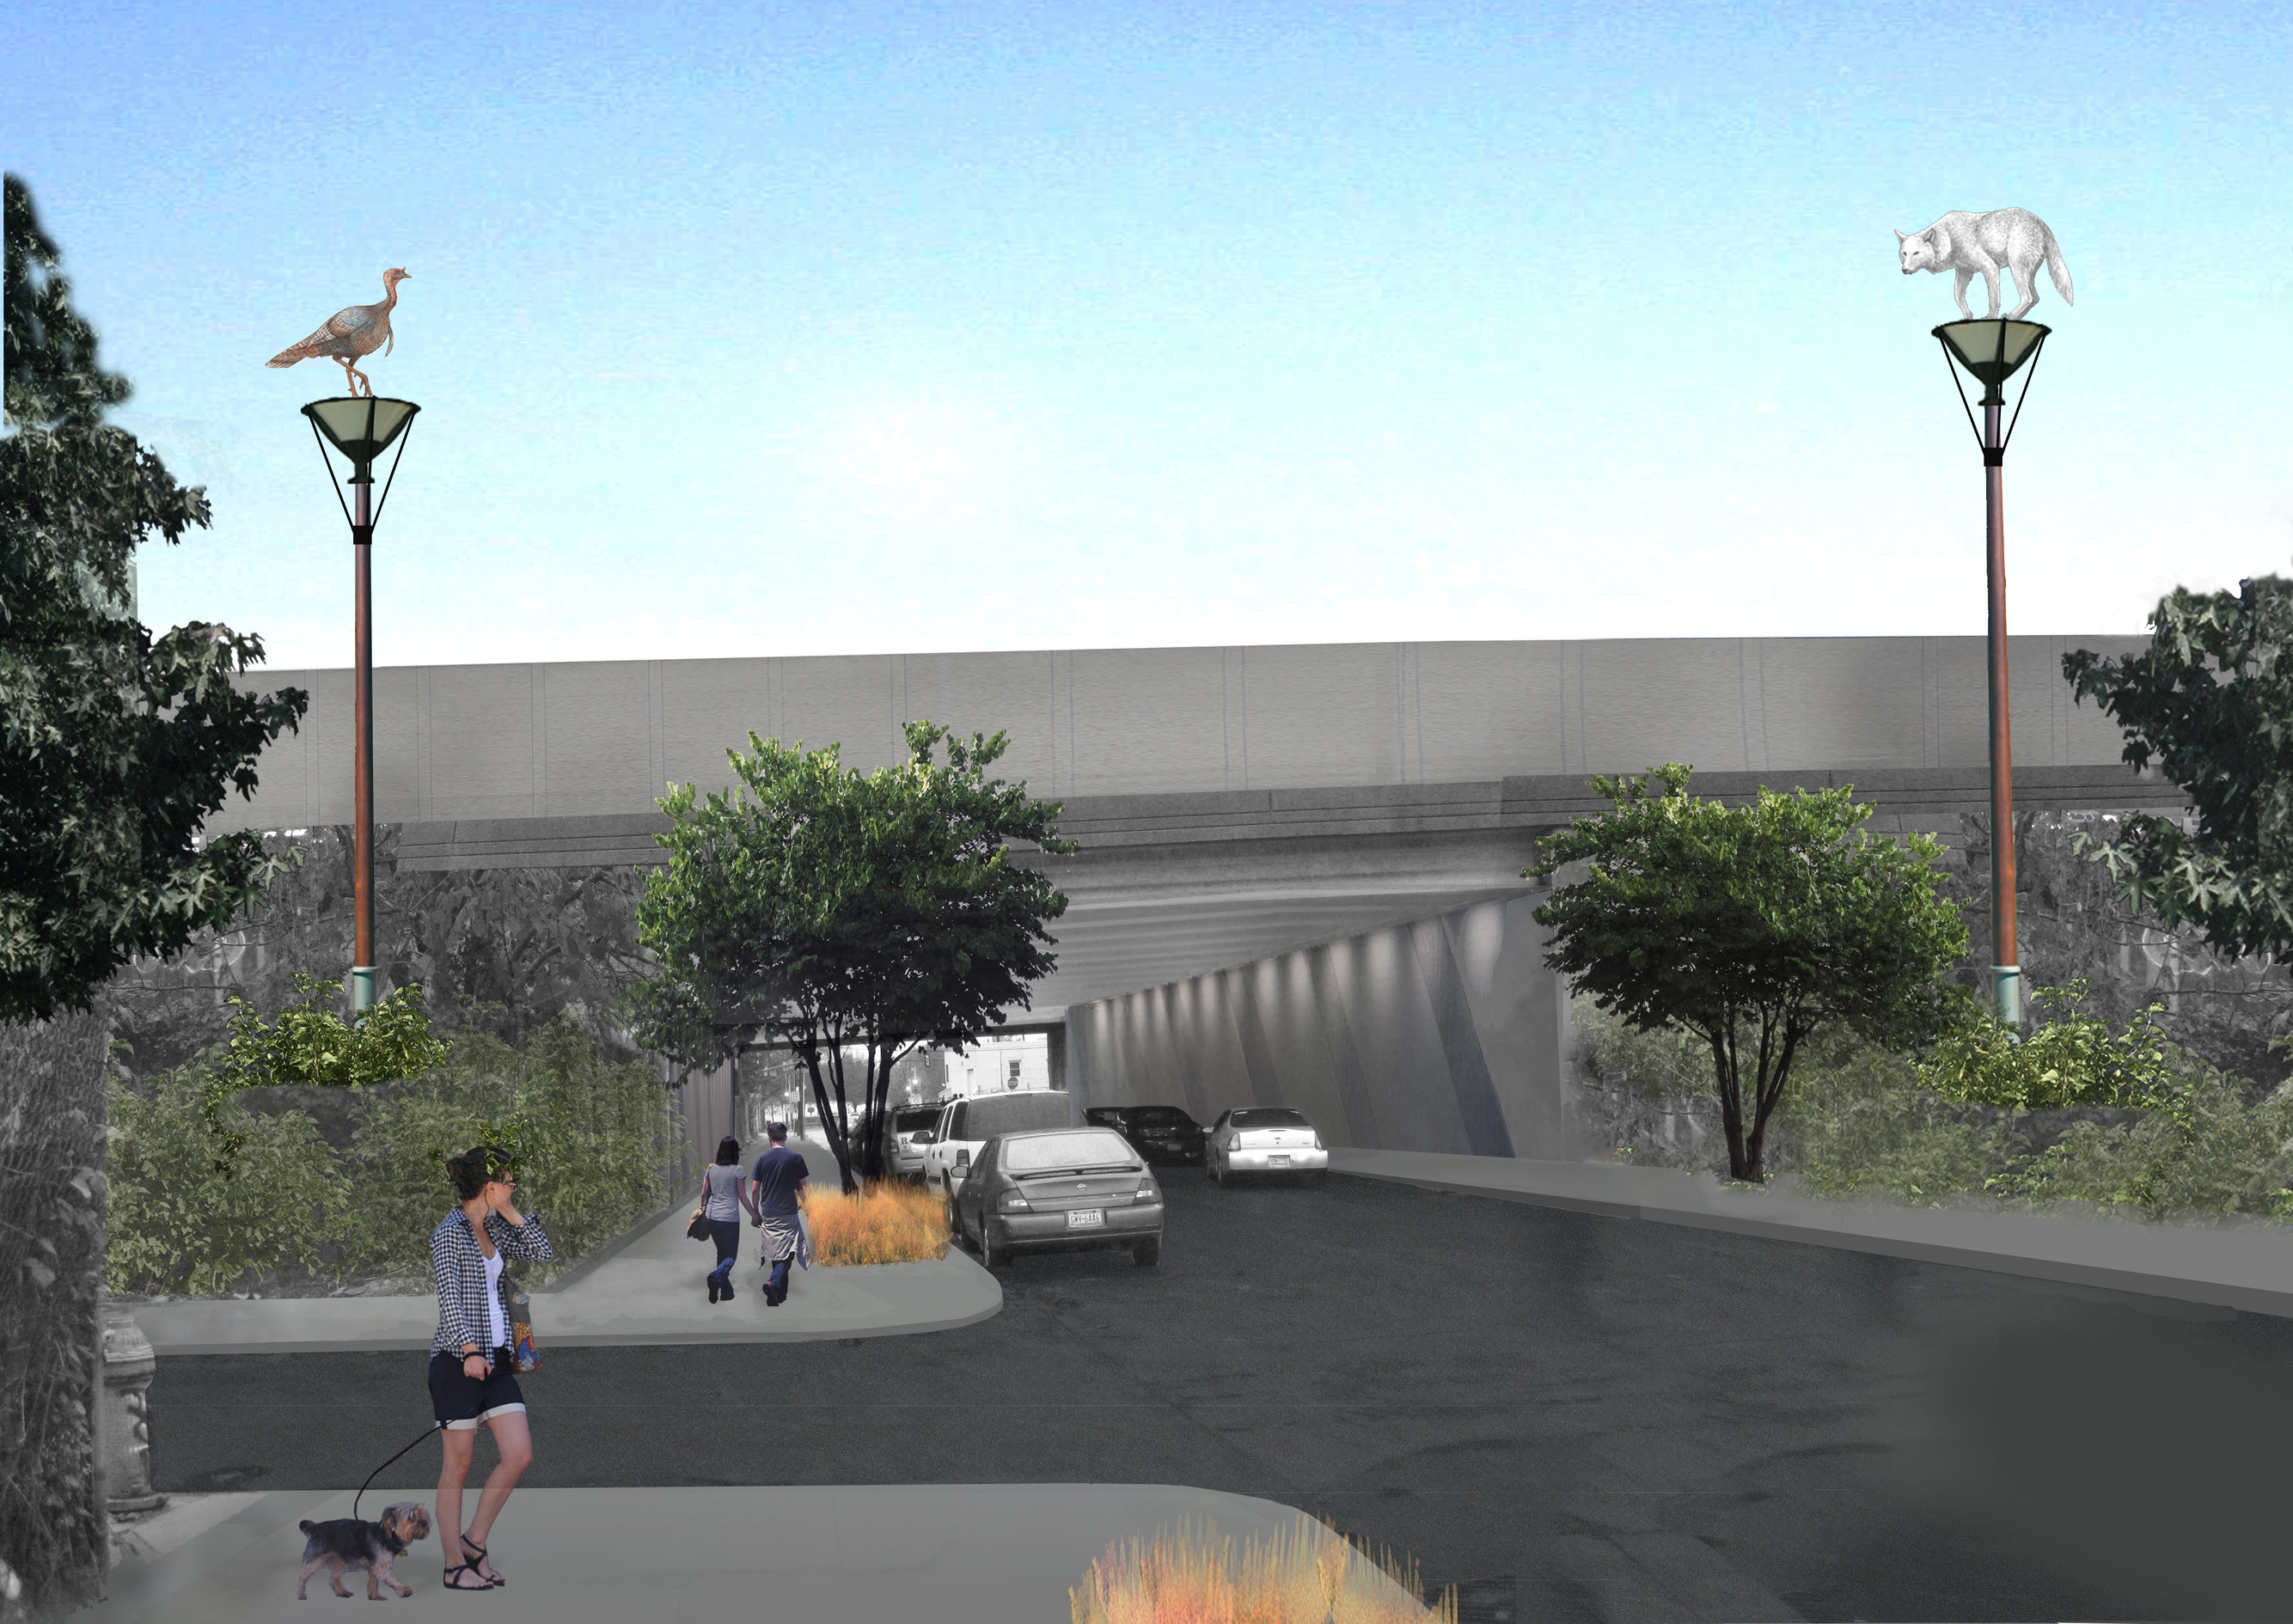 Rendering of the fiberglass turkey and wolf proposed to serve as beacons before the I-95 overpass on Columbia Avenue.  Image courtesy Donald Lipski.